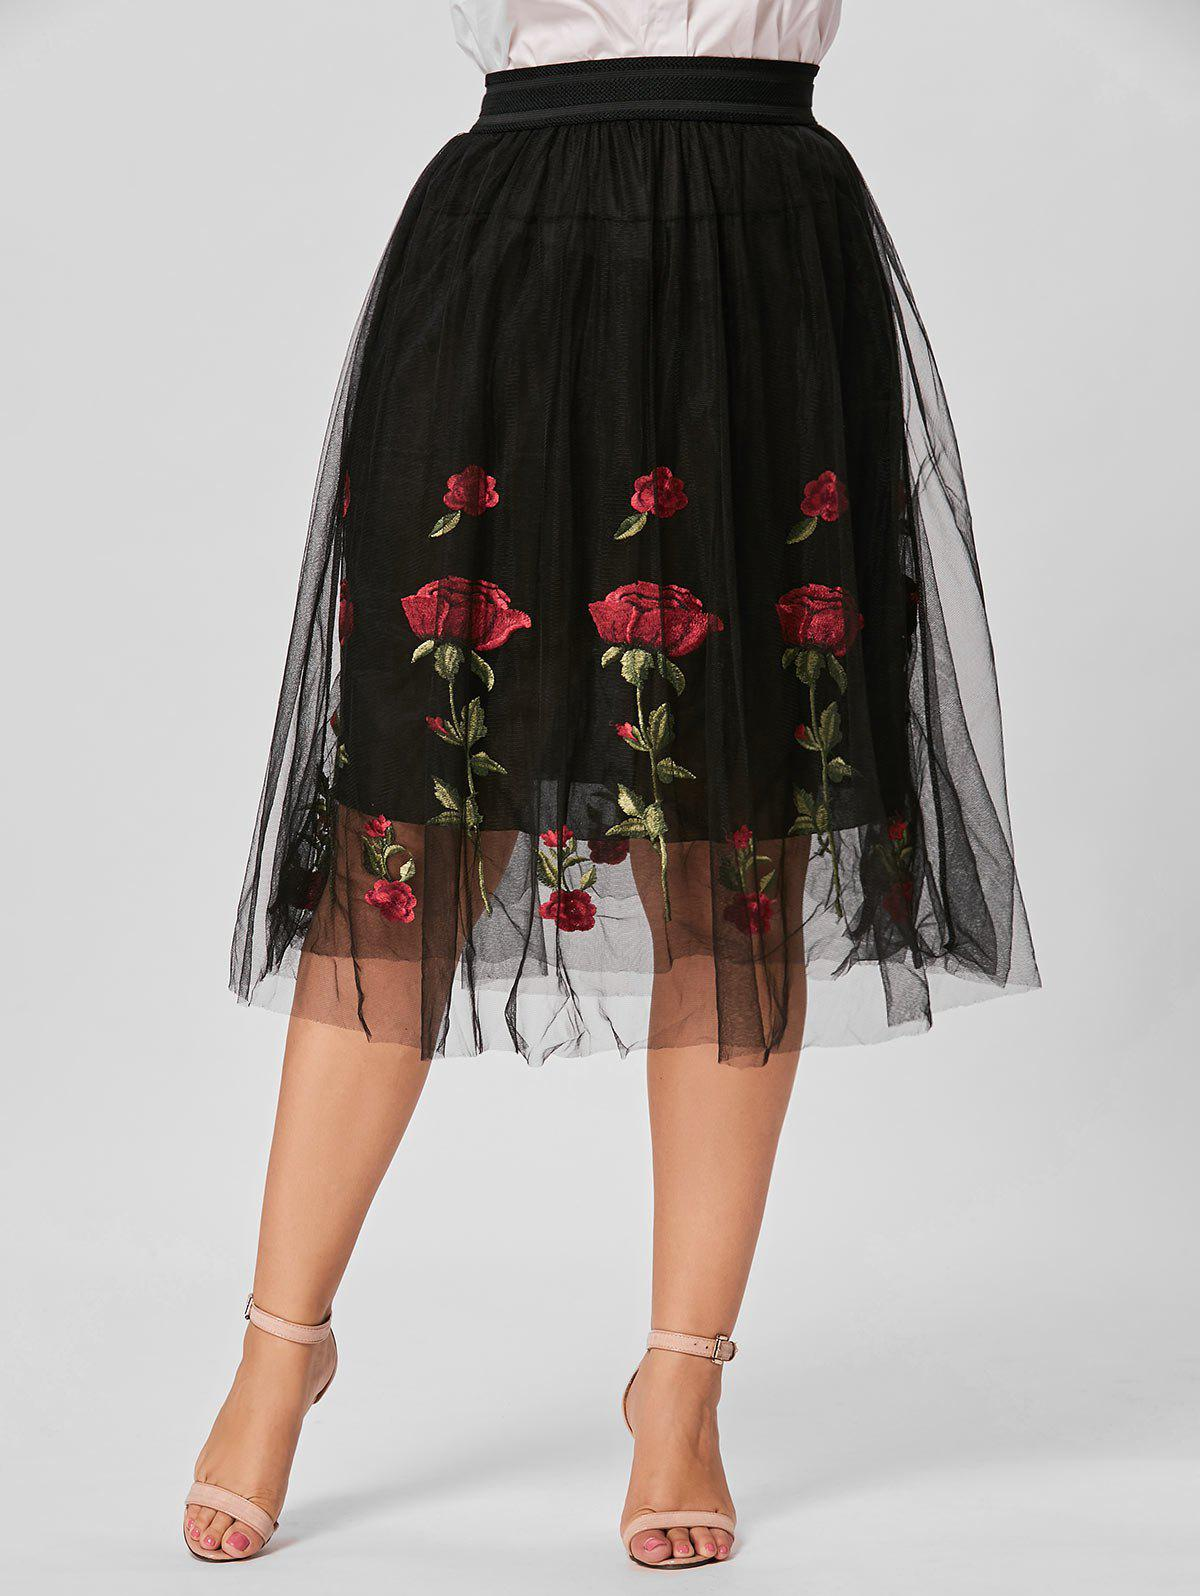 Floral Embroidered Mesh Plus Size SkirtWOMEN<br><br>Size: 3XL; Color: BLACK; Material: Polyester; Length: Mid-Calf; Silhouette: A-Line; Pattern Type: Floral; Season: Fall,Summer; Weight: 0.2750kg; Package Contents: 1 x Skirt;